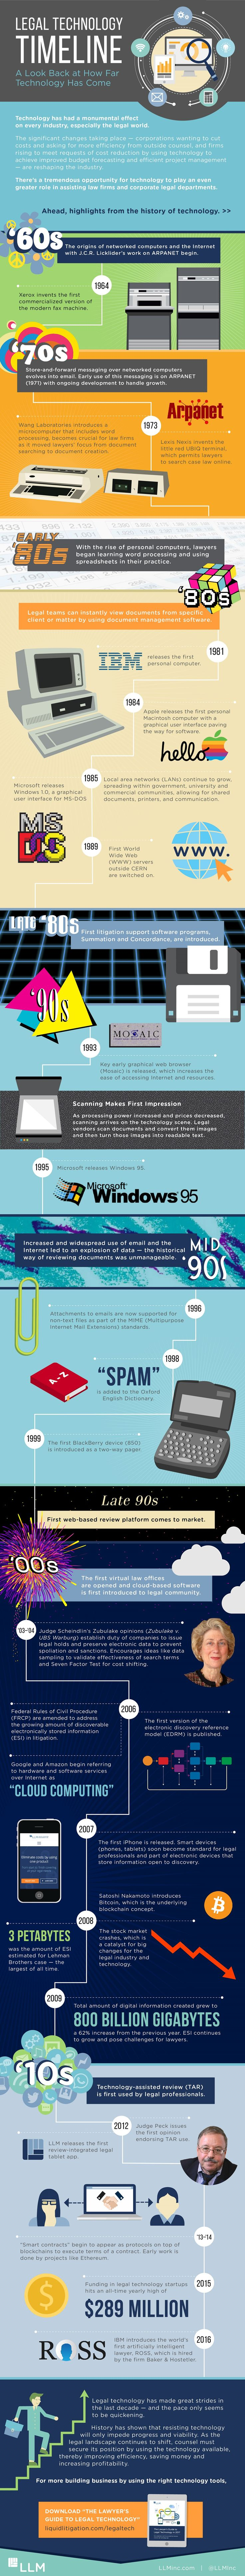 Legal Technology Timeline #Infographic #Technology